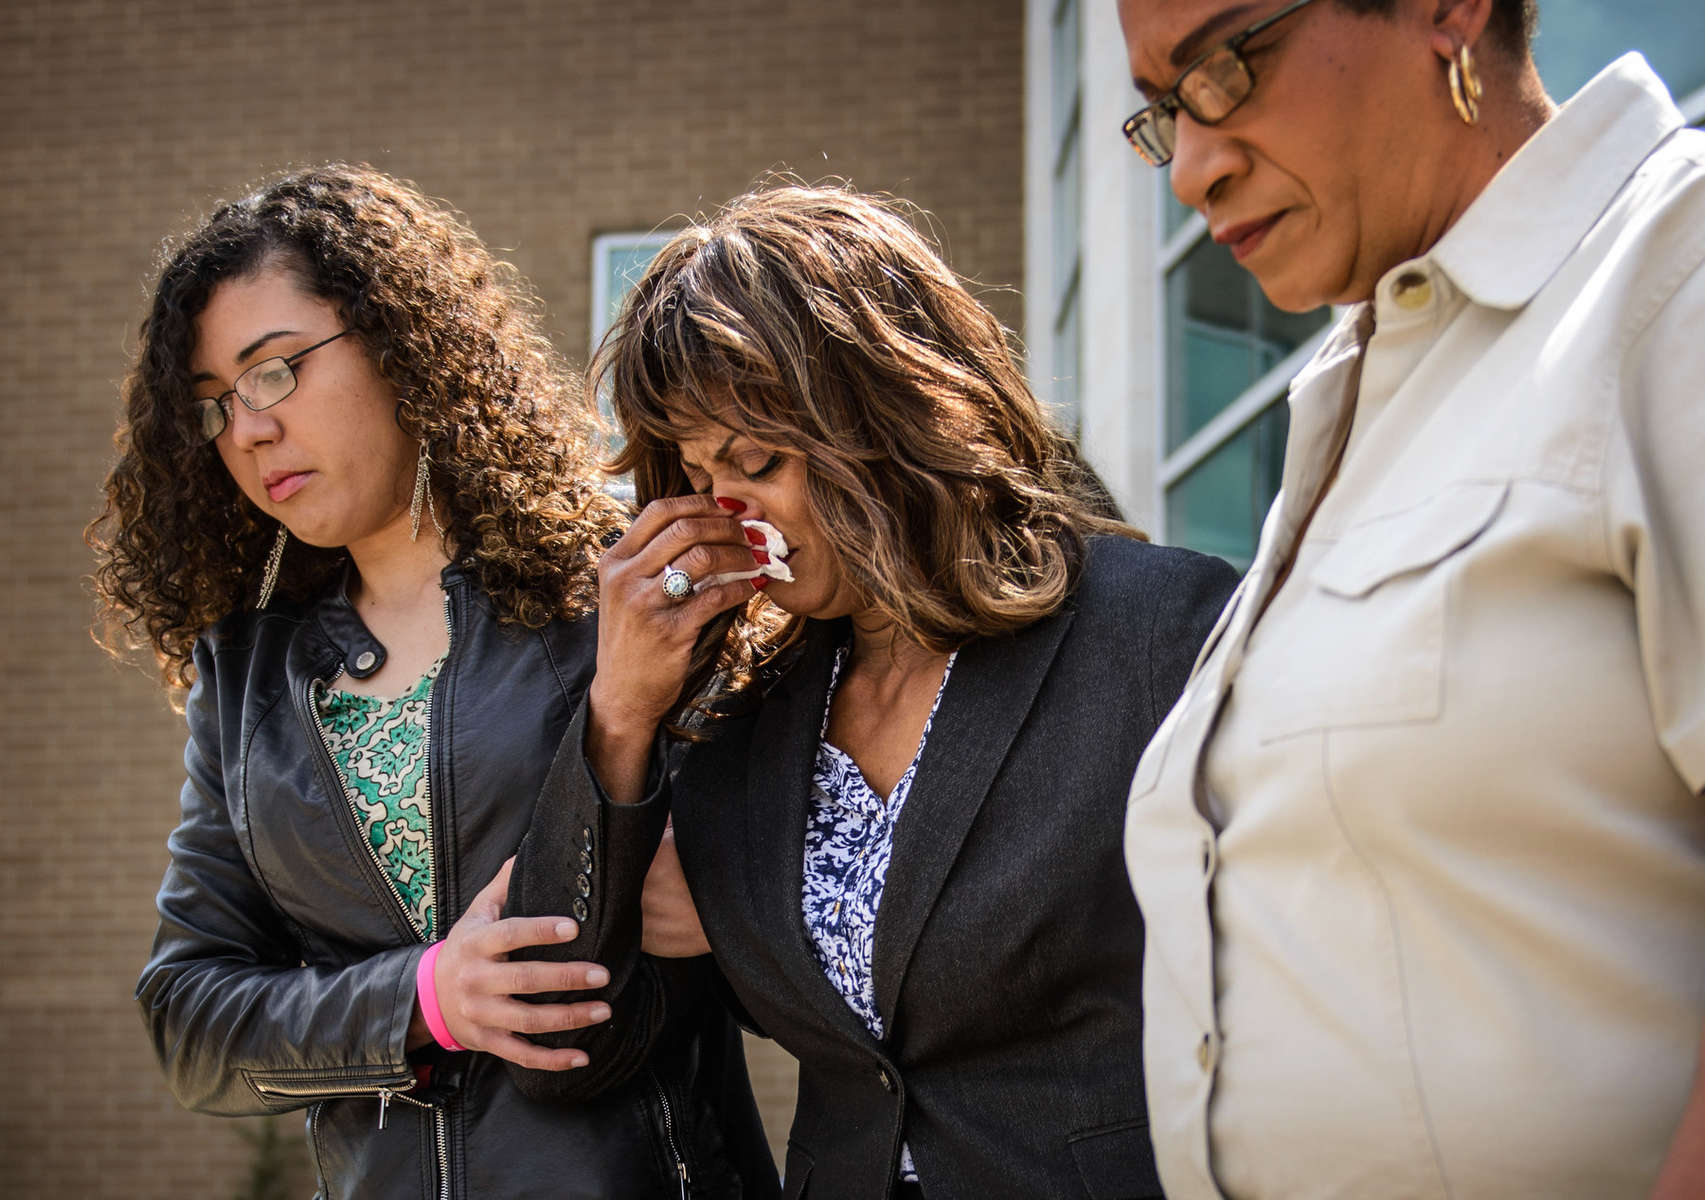 Second Place | General  NewsJames Robinson, The Fayetteville ObserverJudge's Comments: This was probably a difficult situation to get. Nice emotion and good that it was shot from a lower angle because you can see the faces well.Danielle Locklear's grandmother, center, Darlene Heegel leaves the Cumberland County Detention Center after the first appearance of Je'Michael Devanair Malloy and Dominic Tayvon who are charged with the second degree murder of Danielle Locklear.